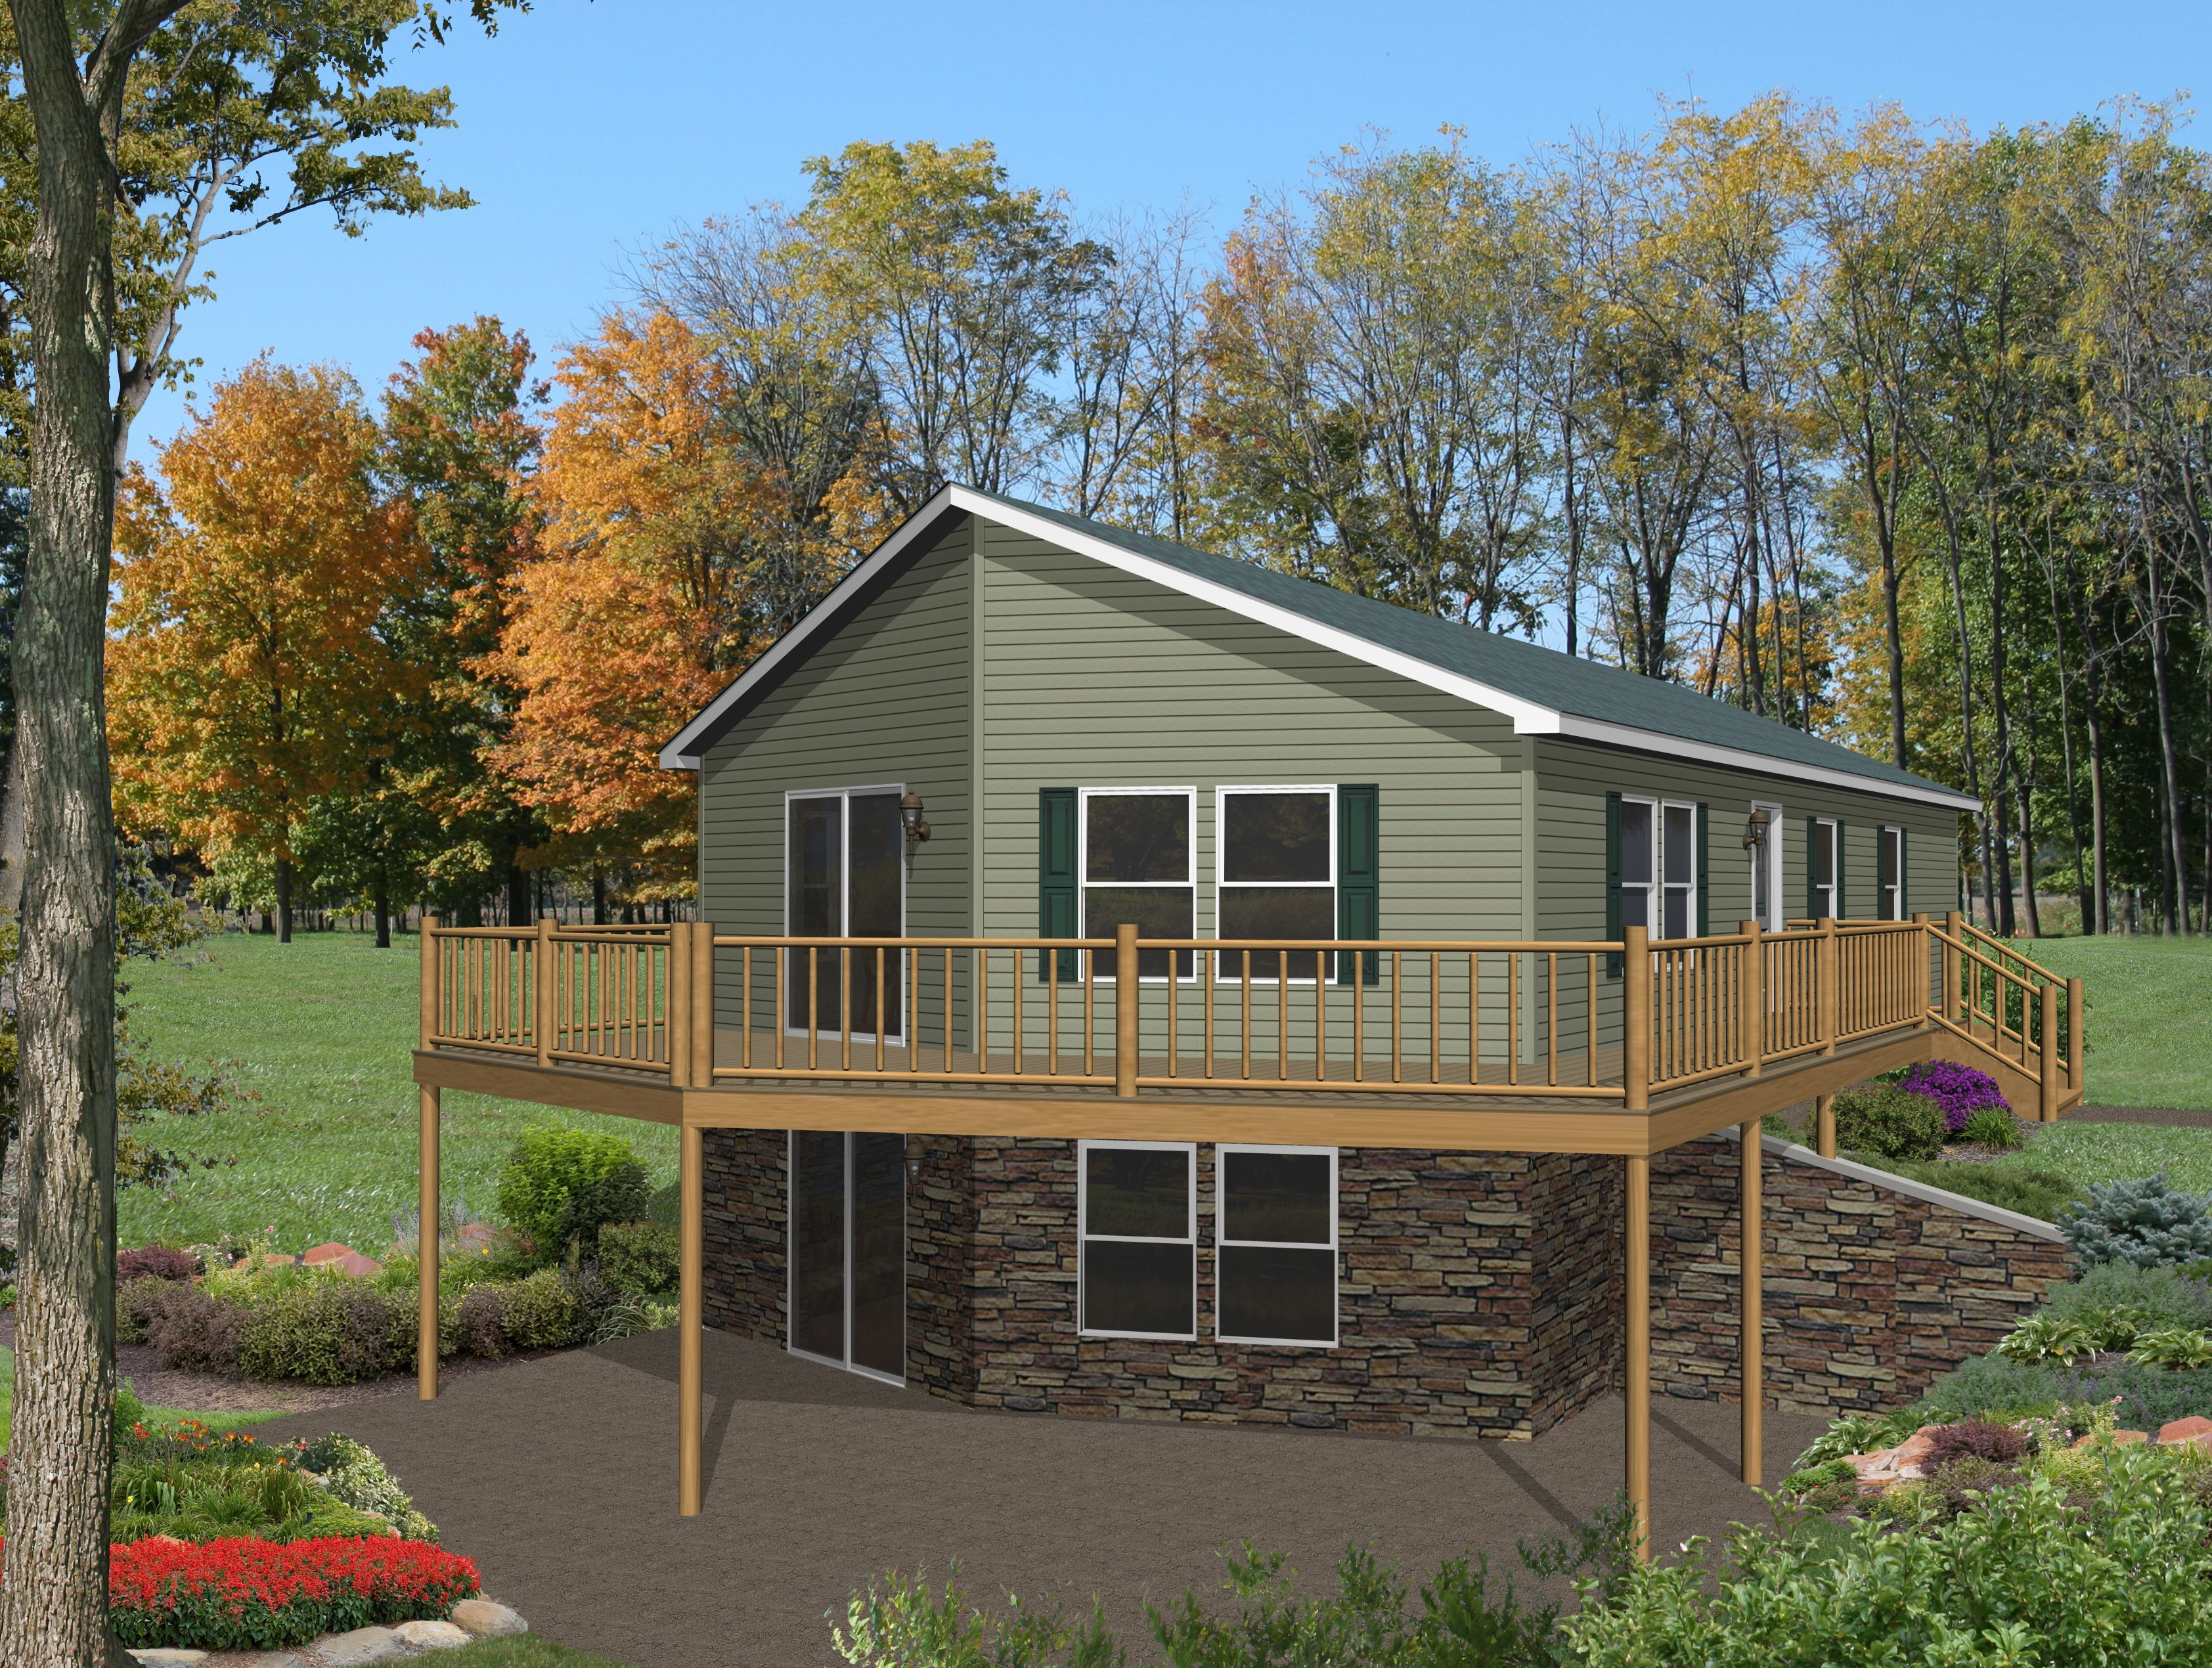 Appleton rg751a commodore homes of indiana grandville for Country home plans with walkout basement